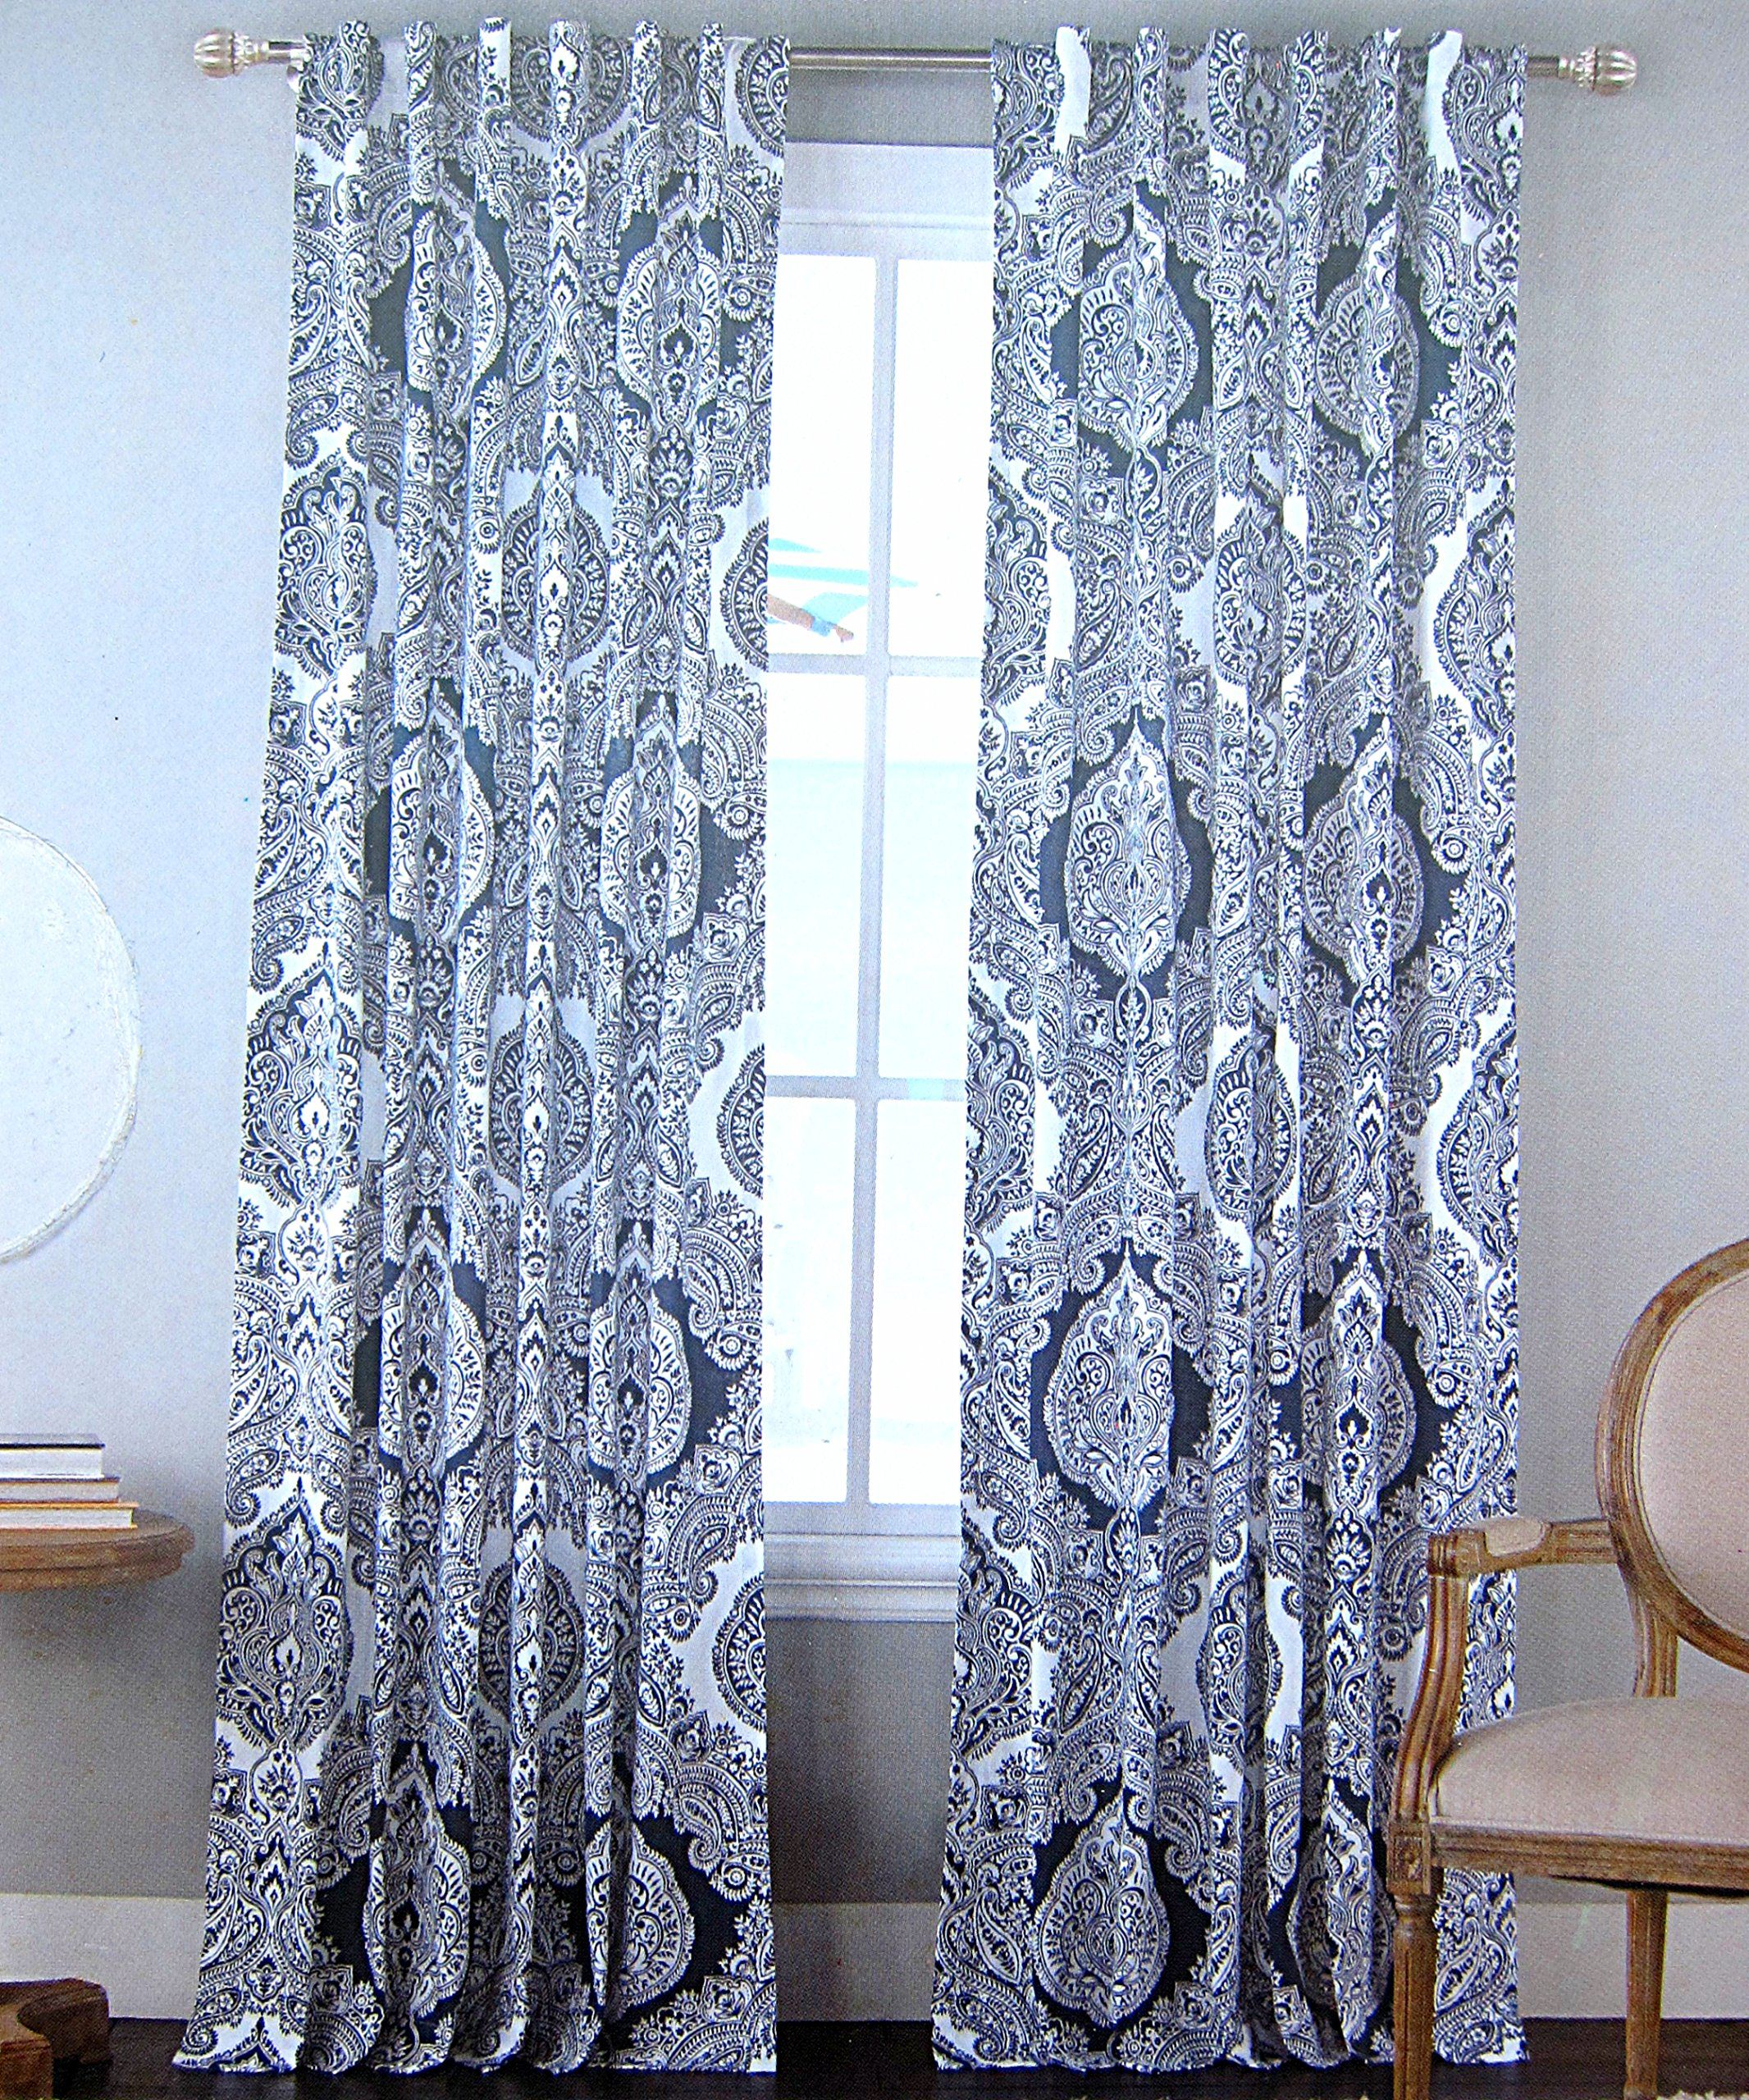 Amazon Envogue Window Curtains Paisley Damask Medallions Navy